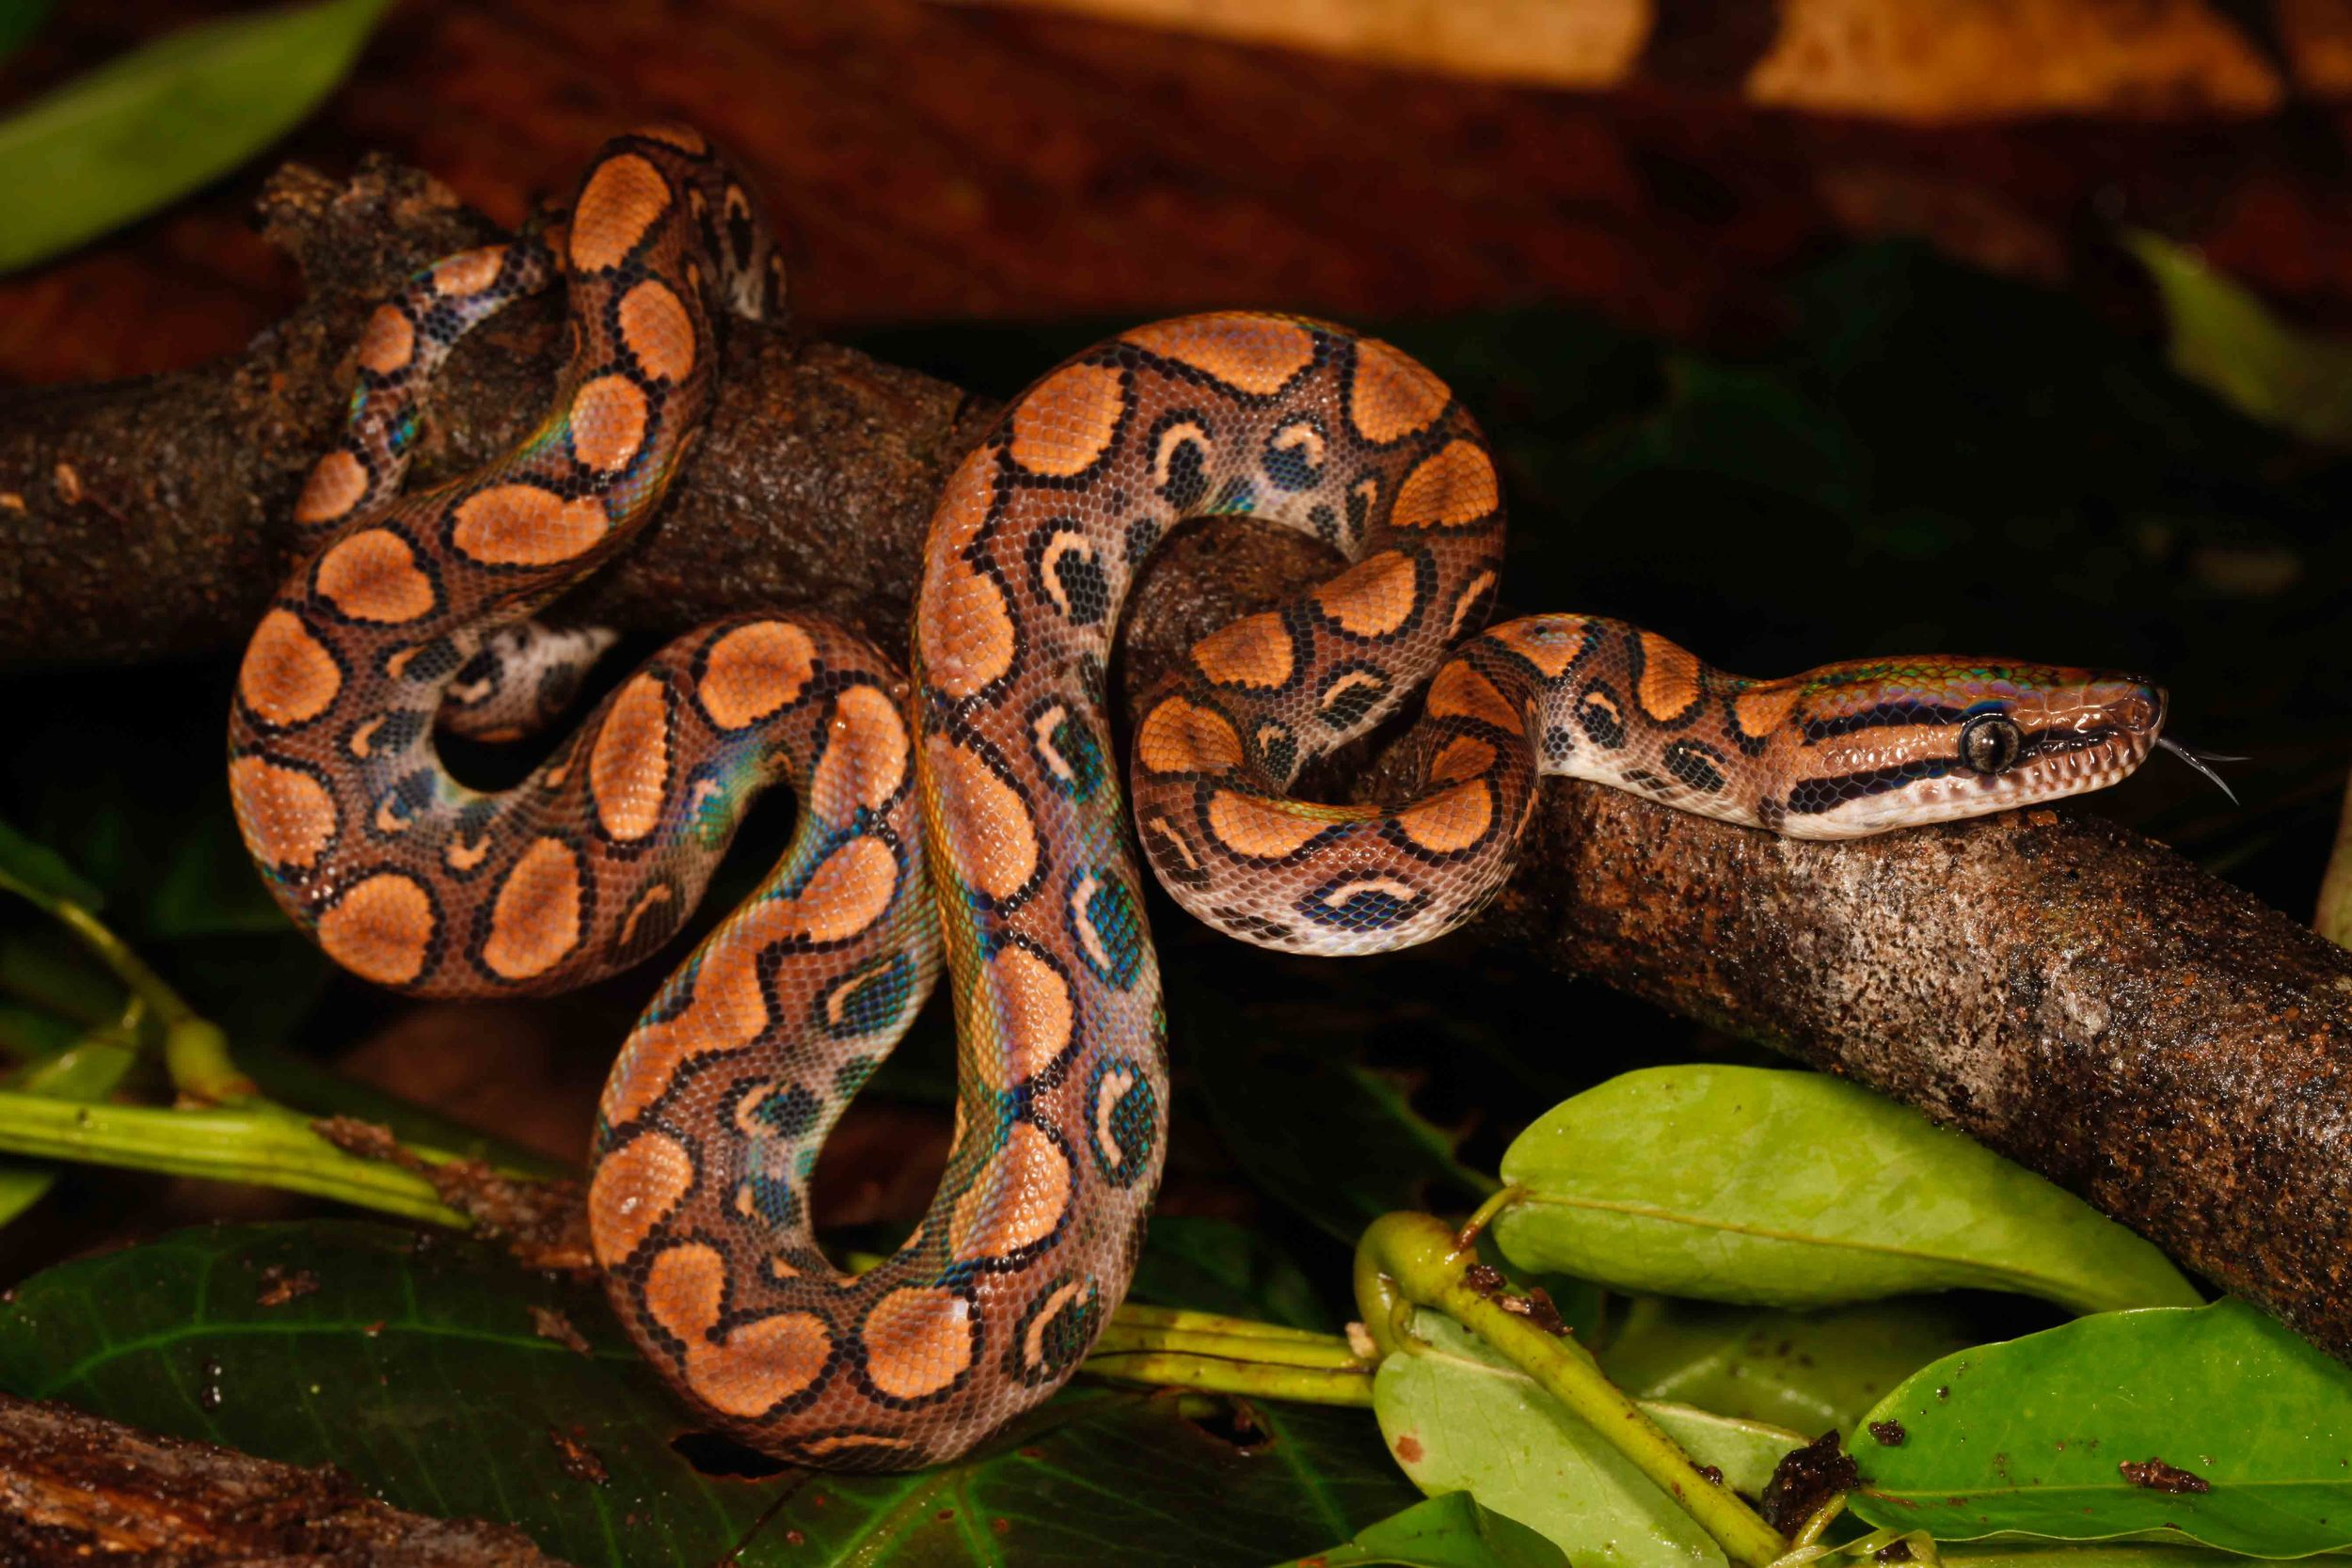 Epicrates cenchria, Peruvian Rainbow Boa (Photo by Matt Cage)